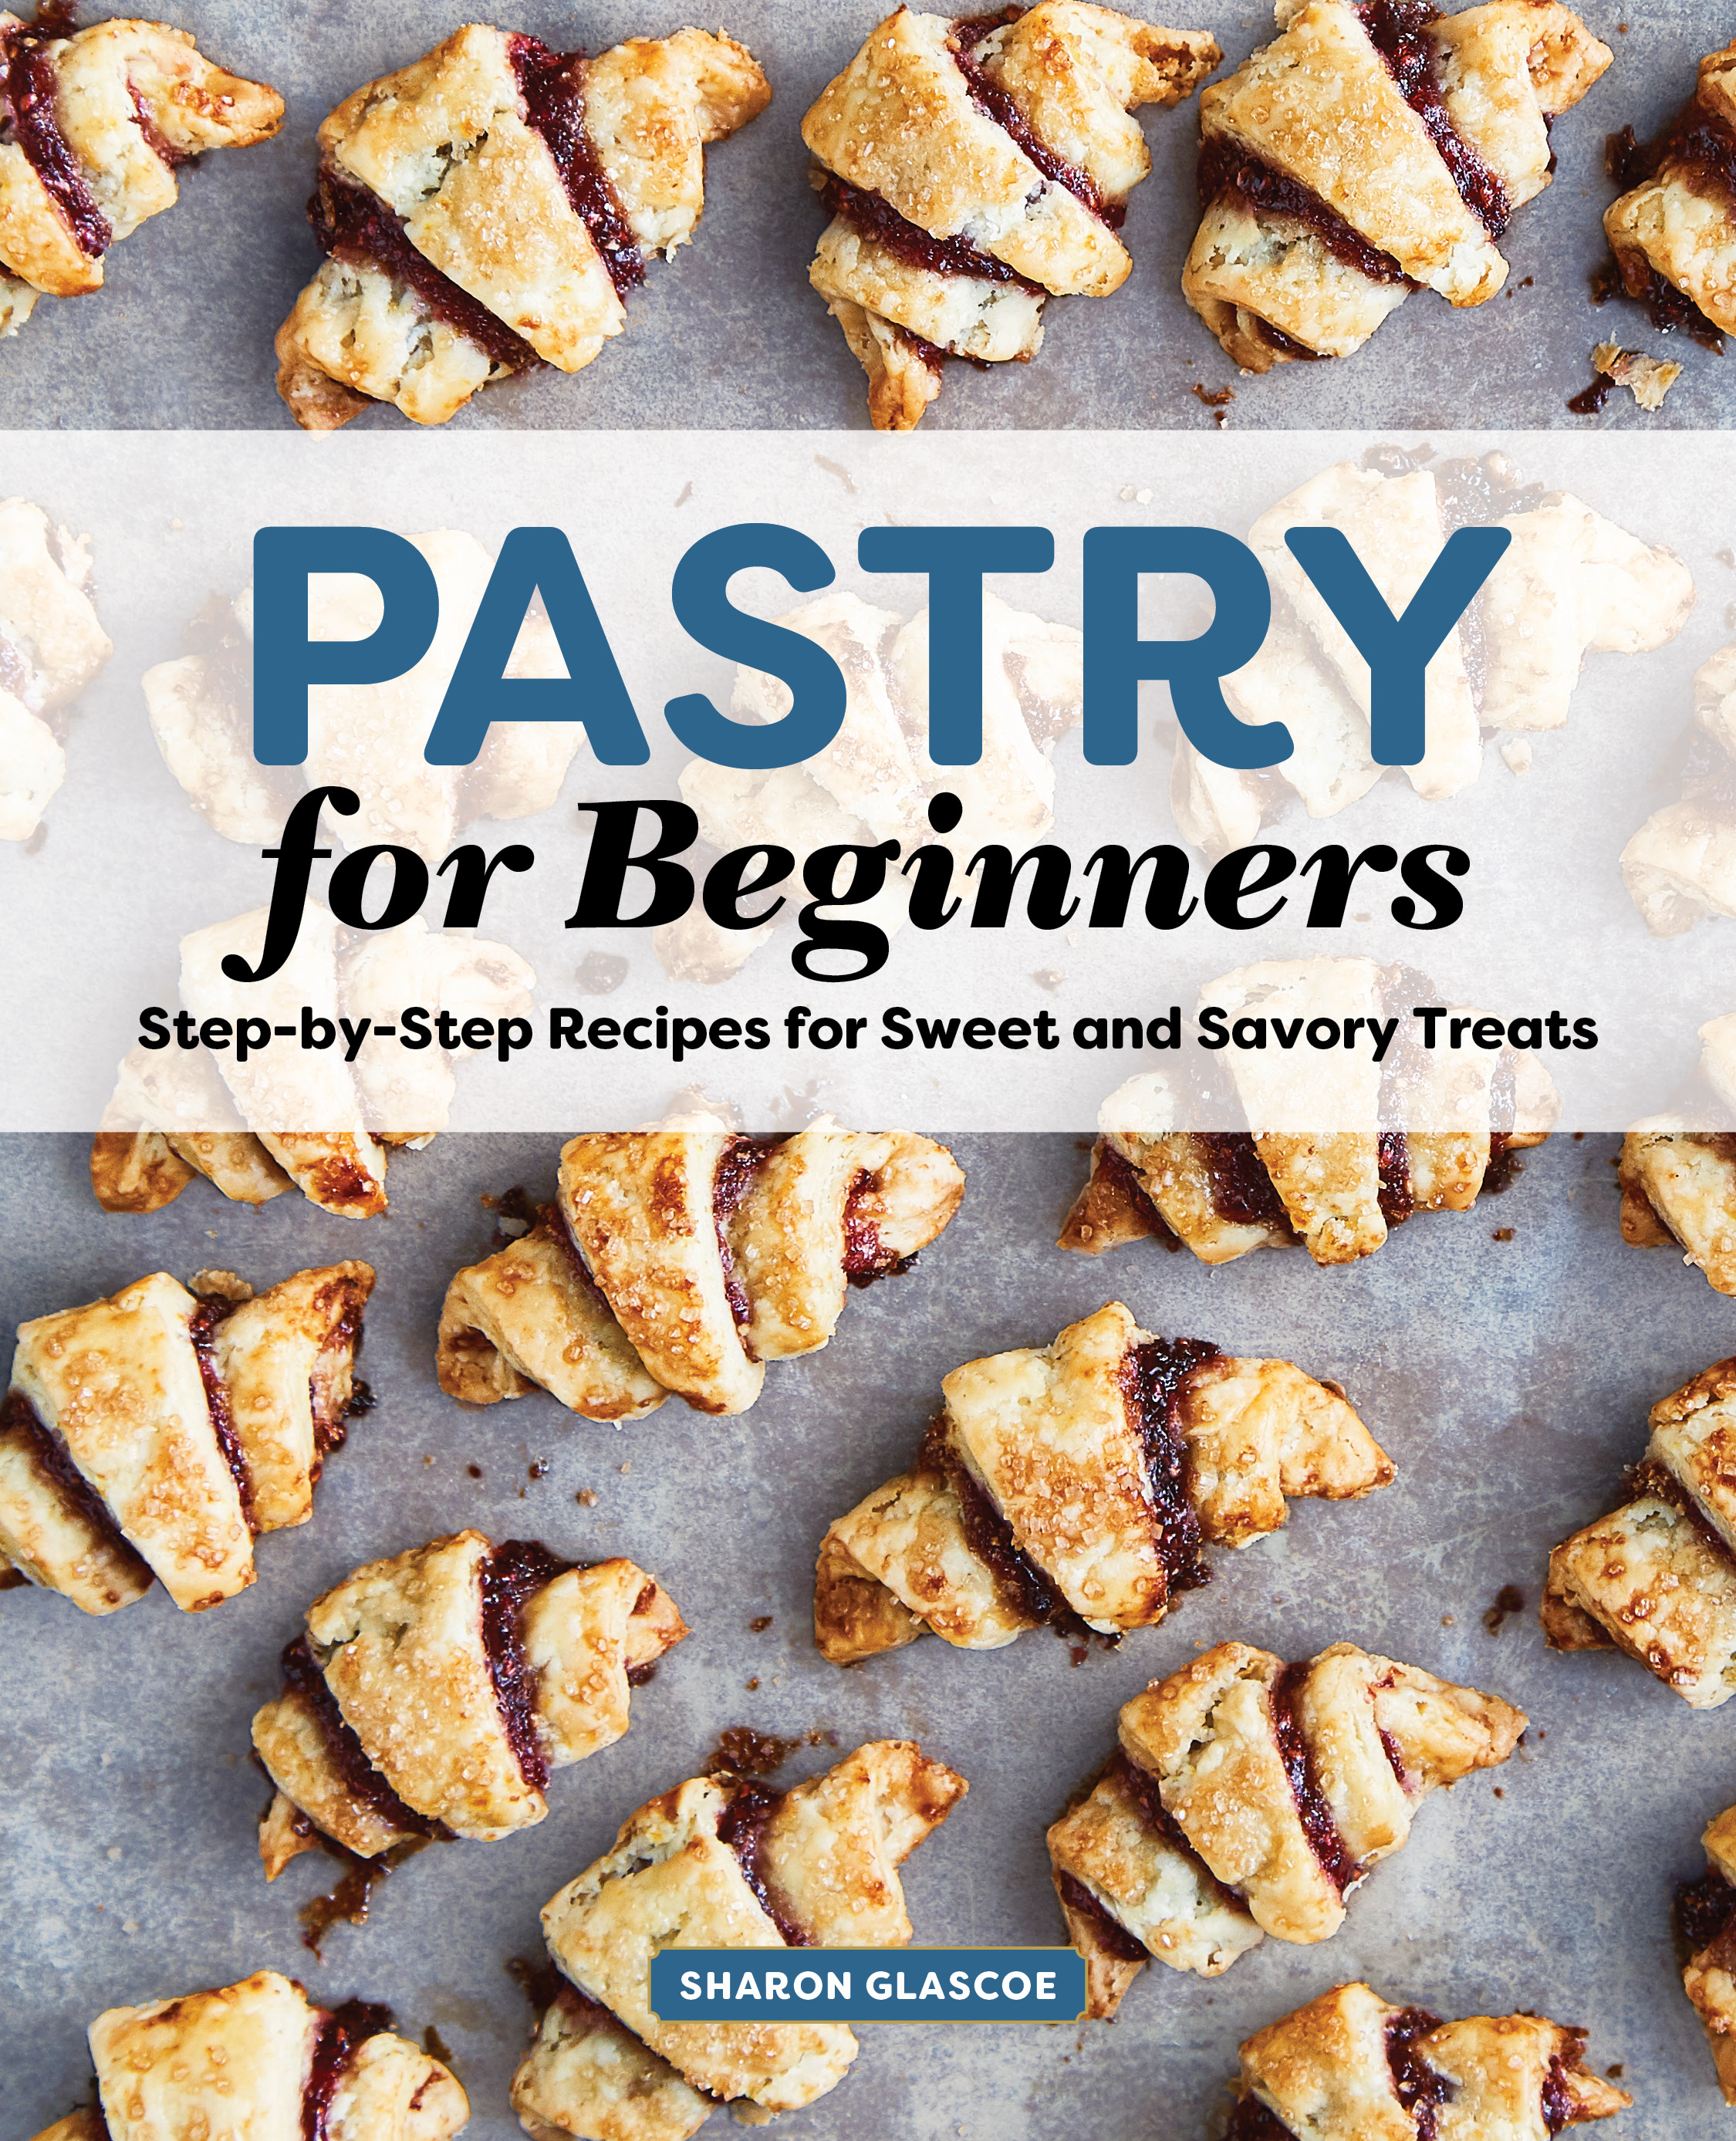 Pastry for beginners, step by step recipes for sweet and savory treats recipe book